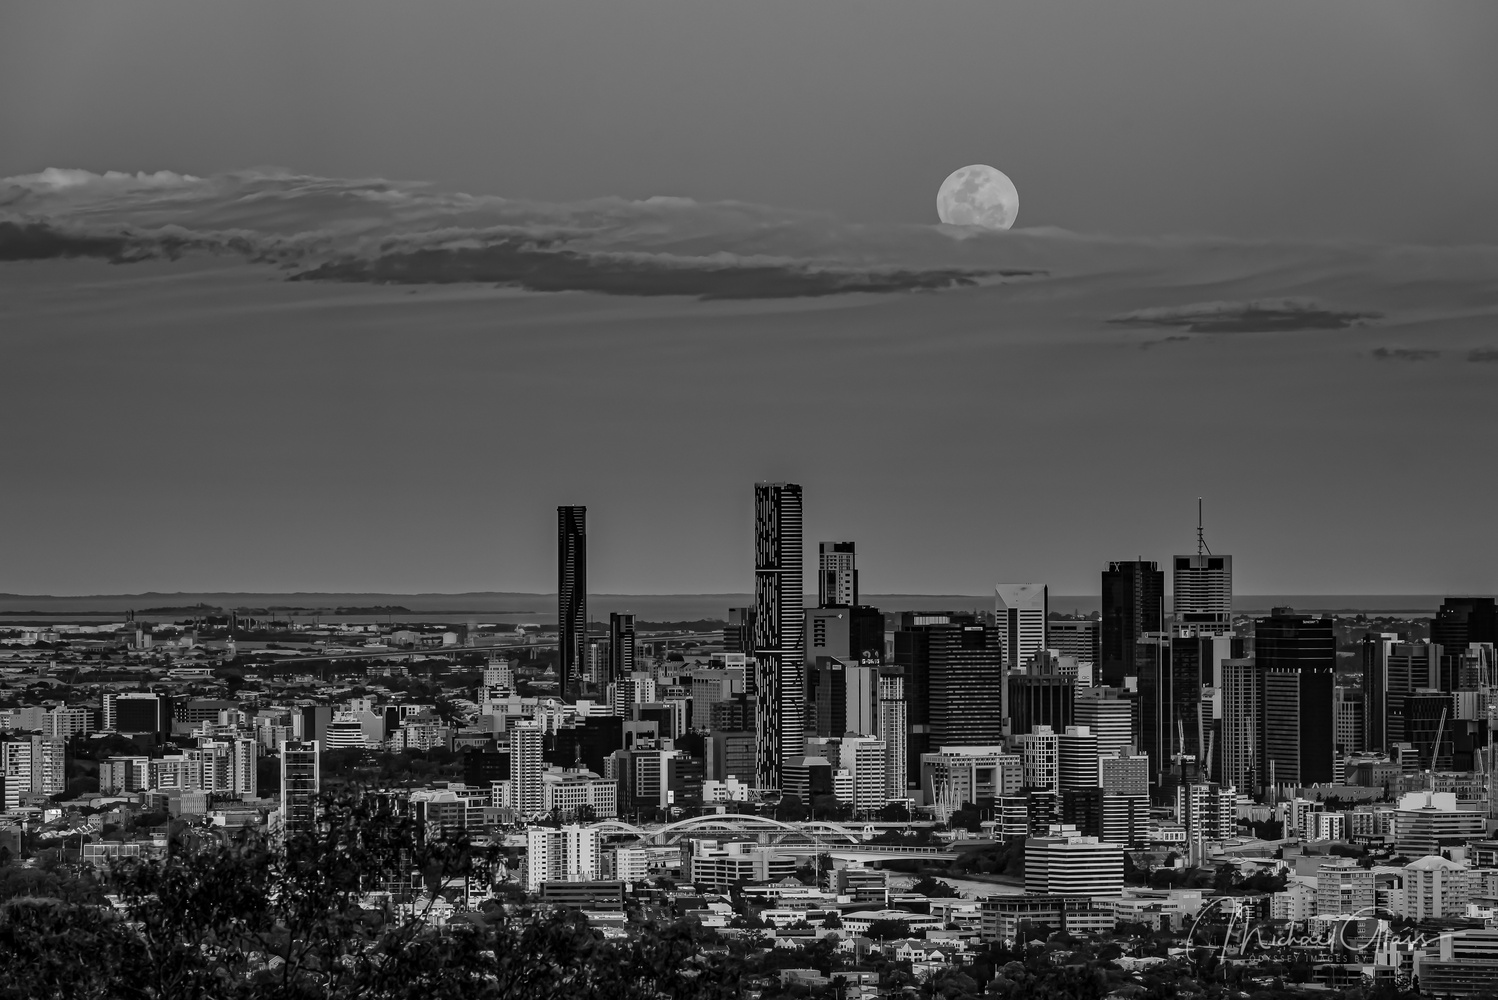 Supermoon in Mono by Mick Glass